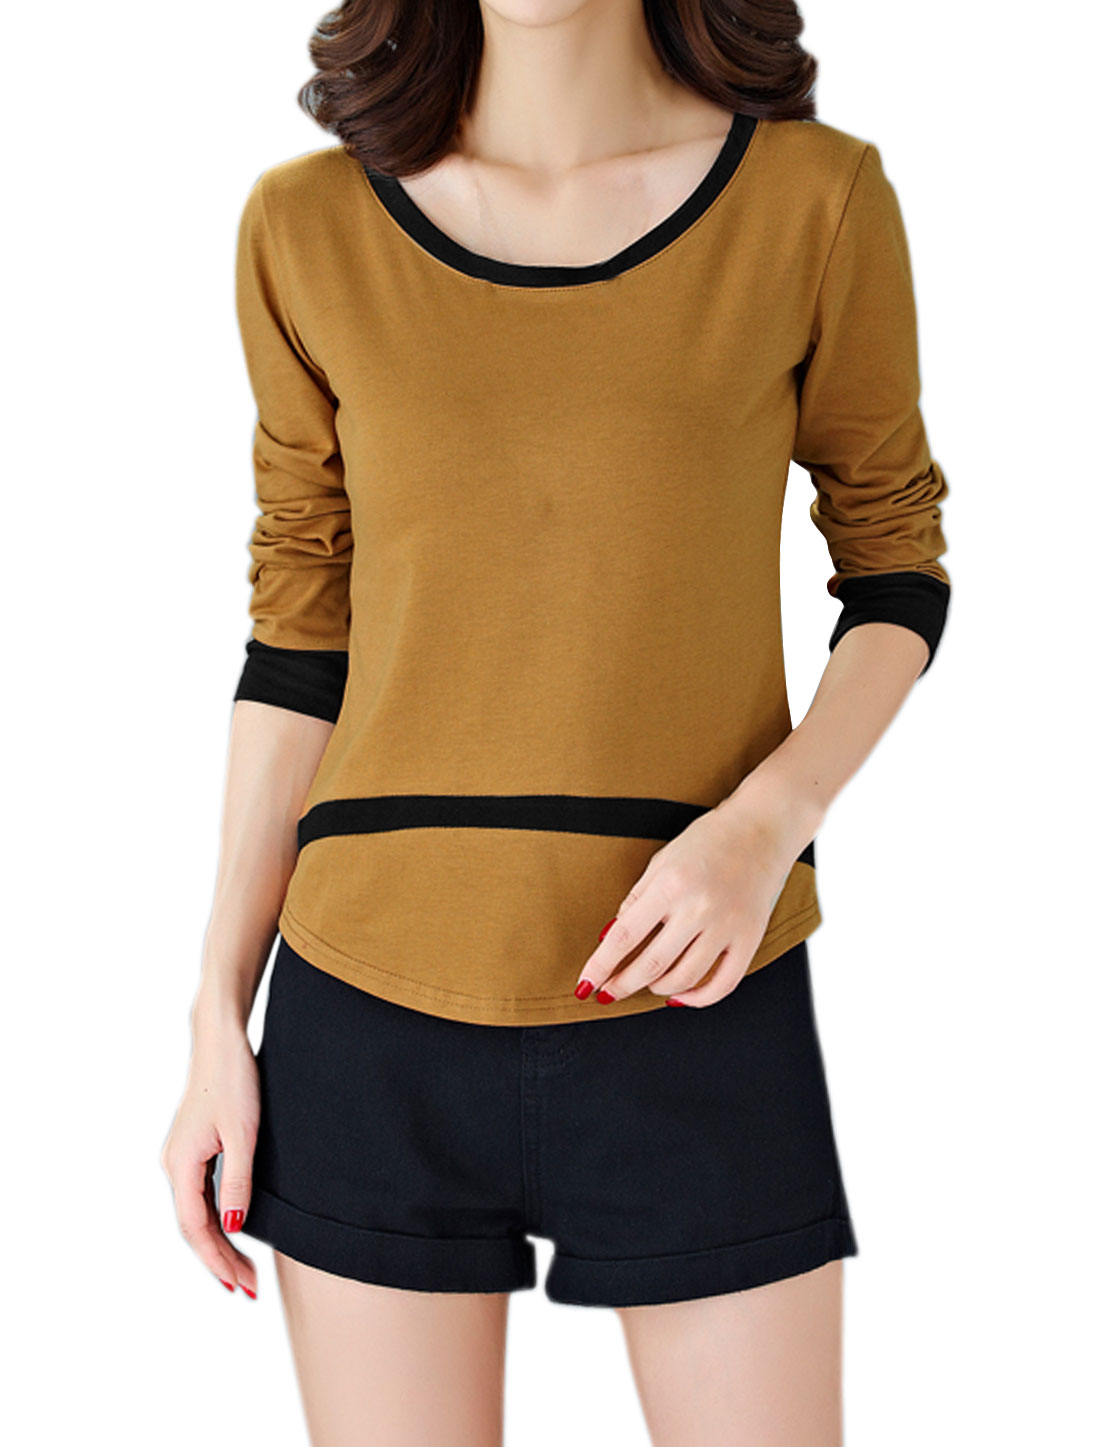 Women Scoop Contrast Color Curved Hem Tee Shirt Brown M